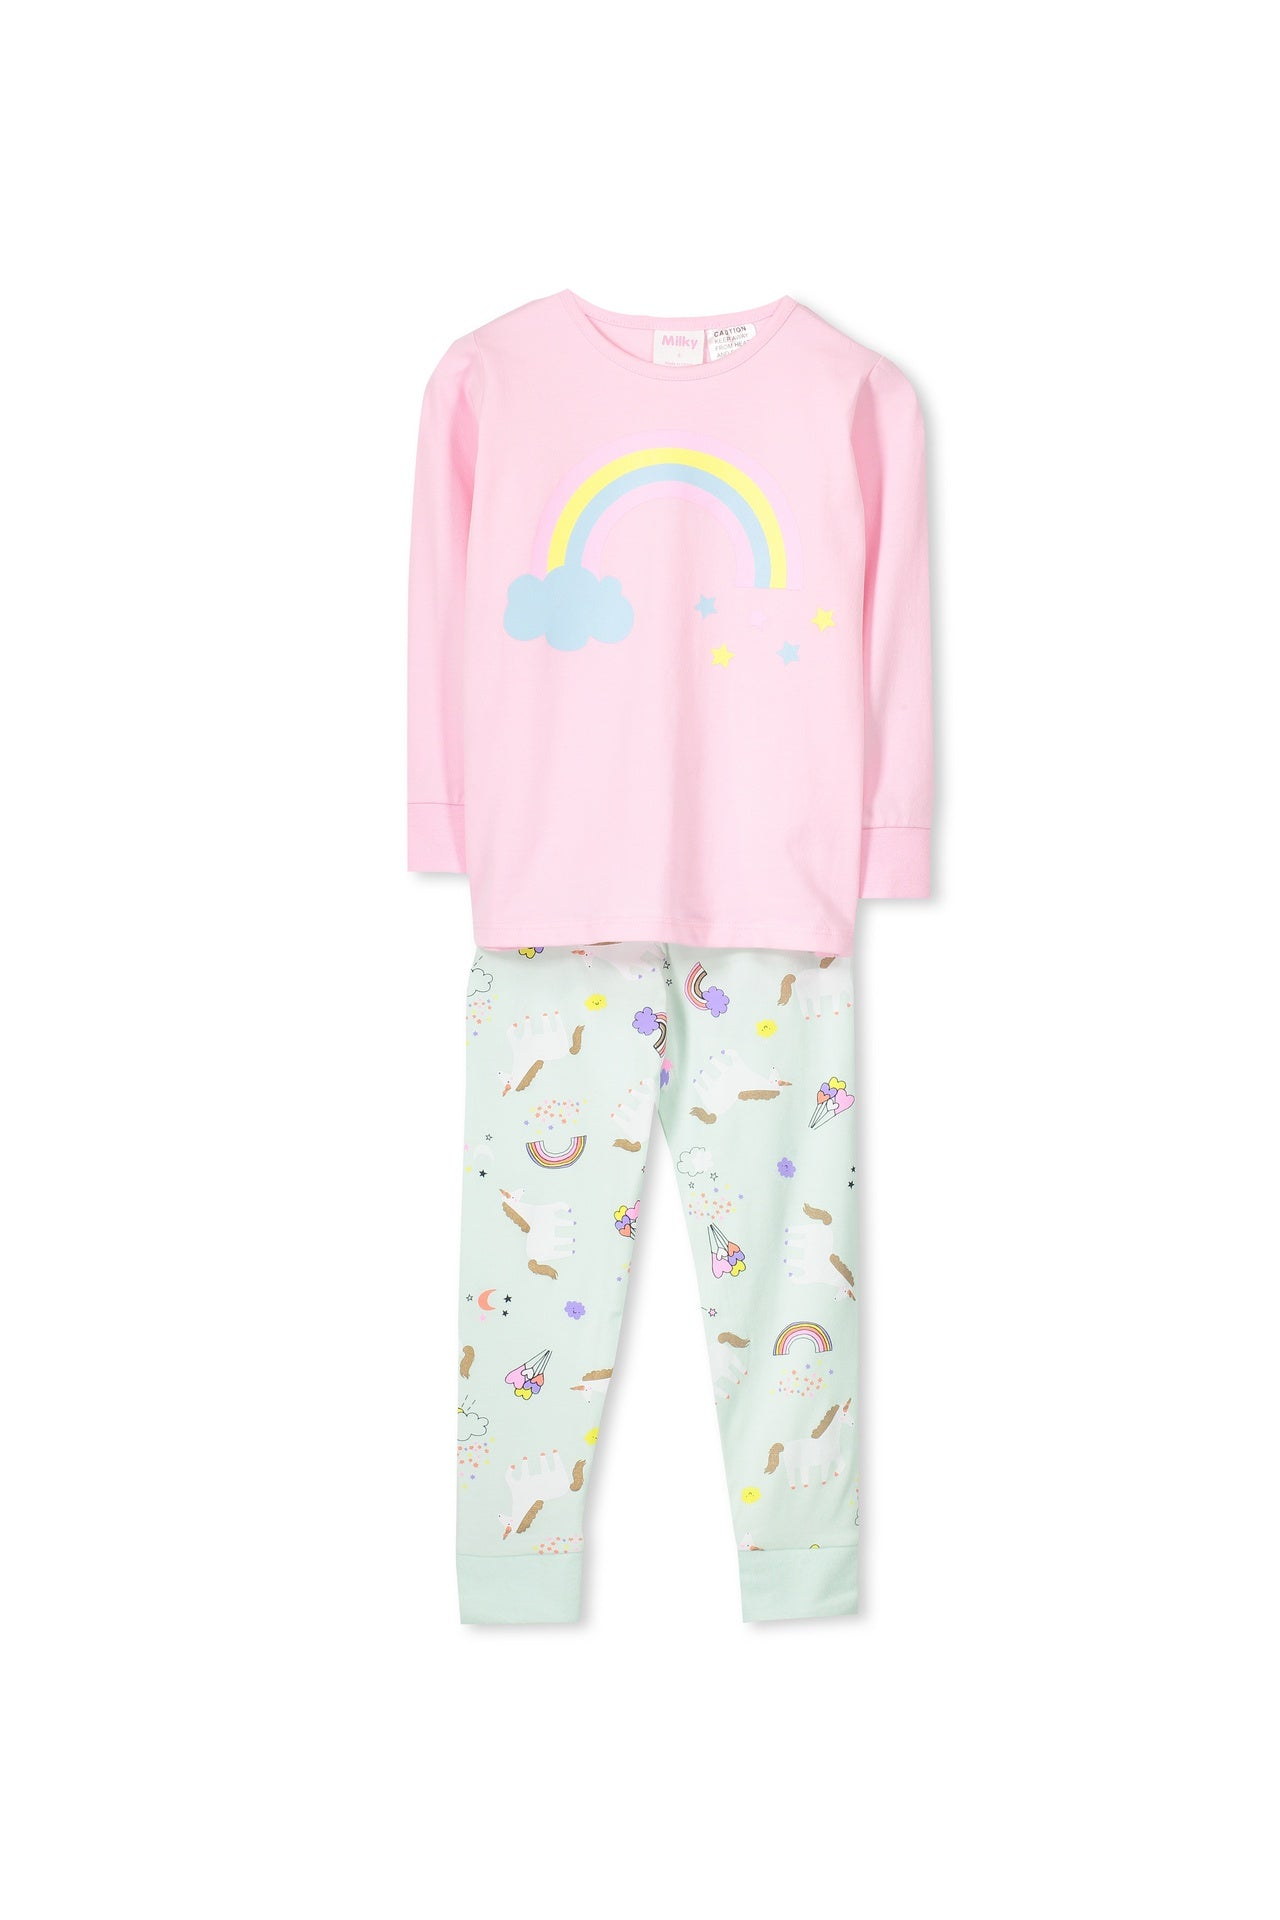 Baby Girls Unicorn PJ's